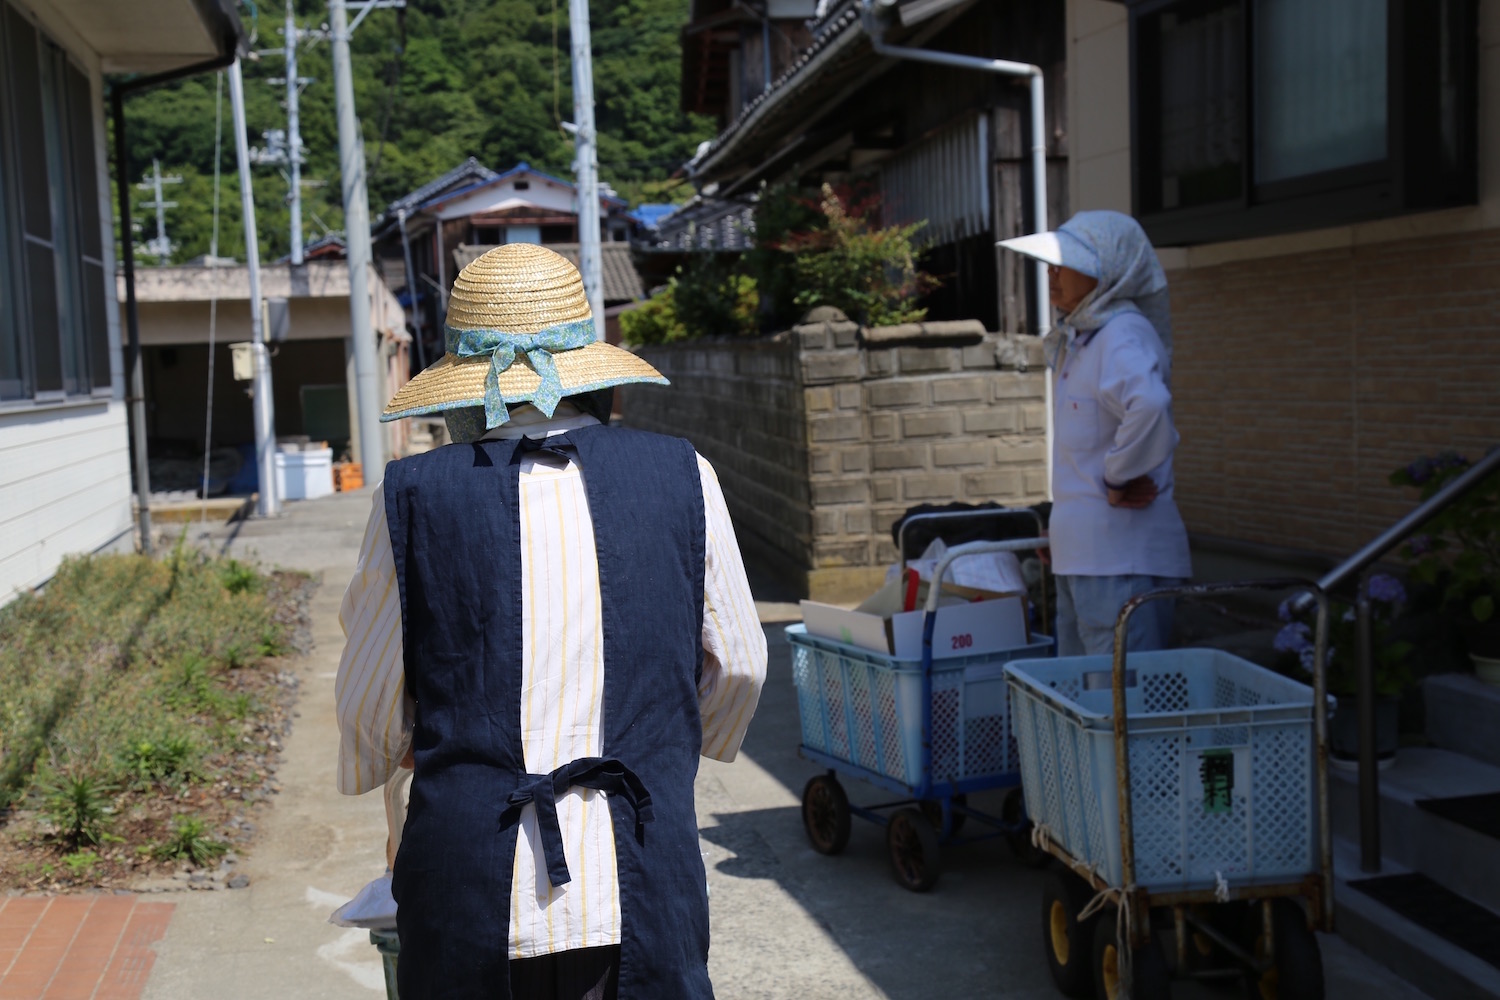 ushima-grocery-delivery.jpg